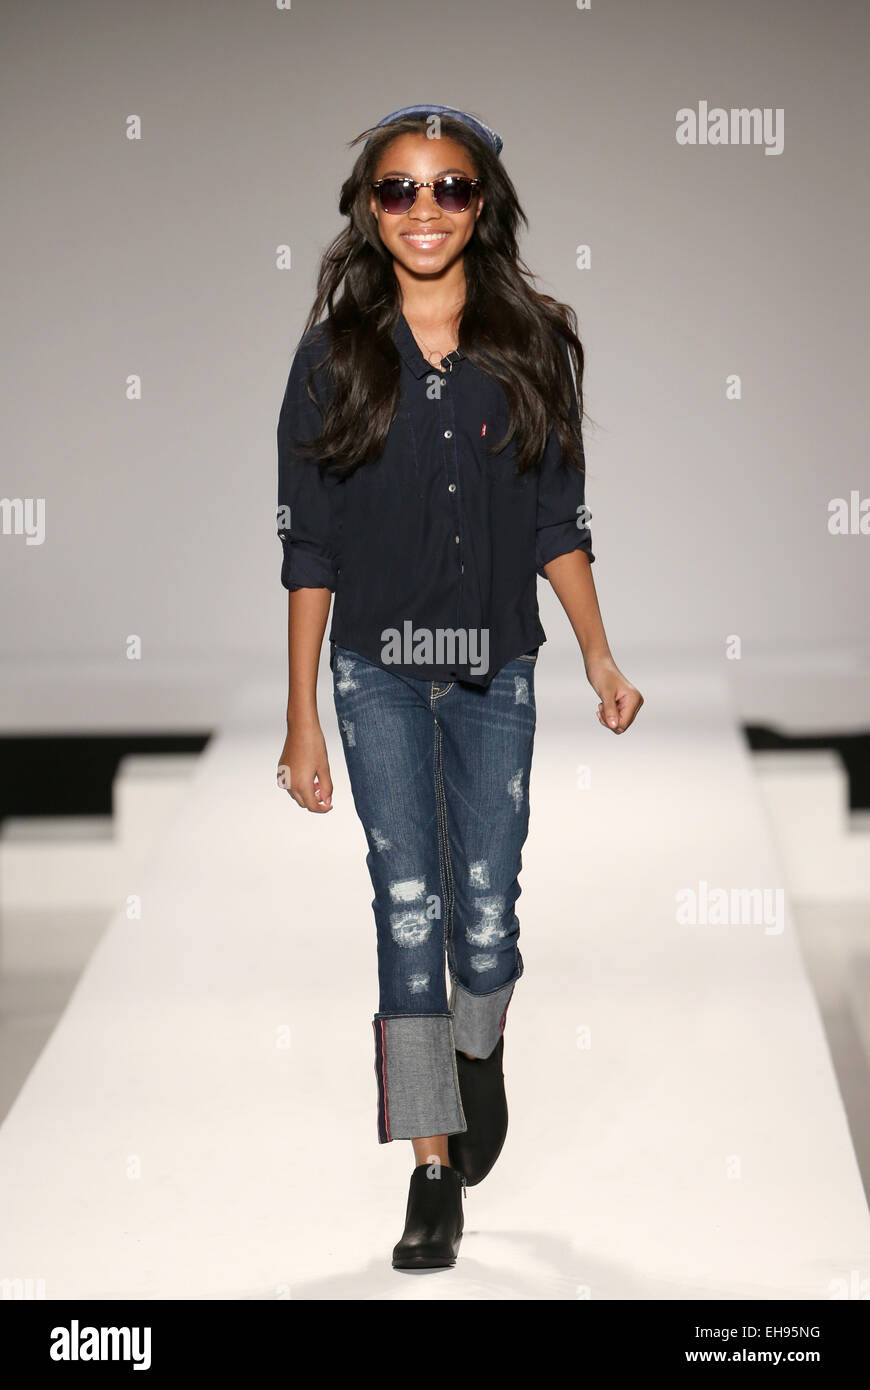 Child Model Walks The Runway At The Nike Levi S Kids Fashion Show